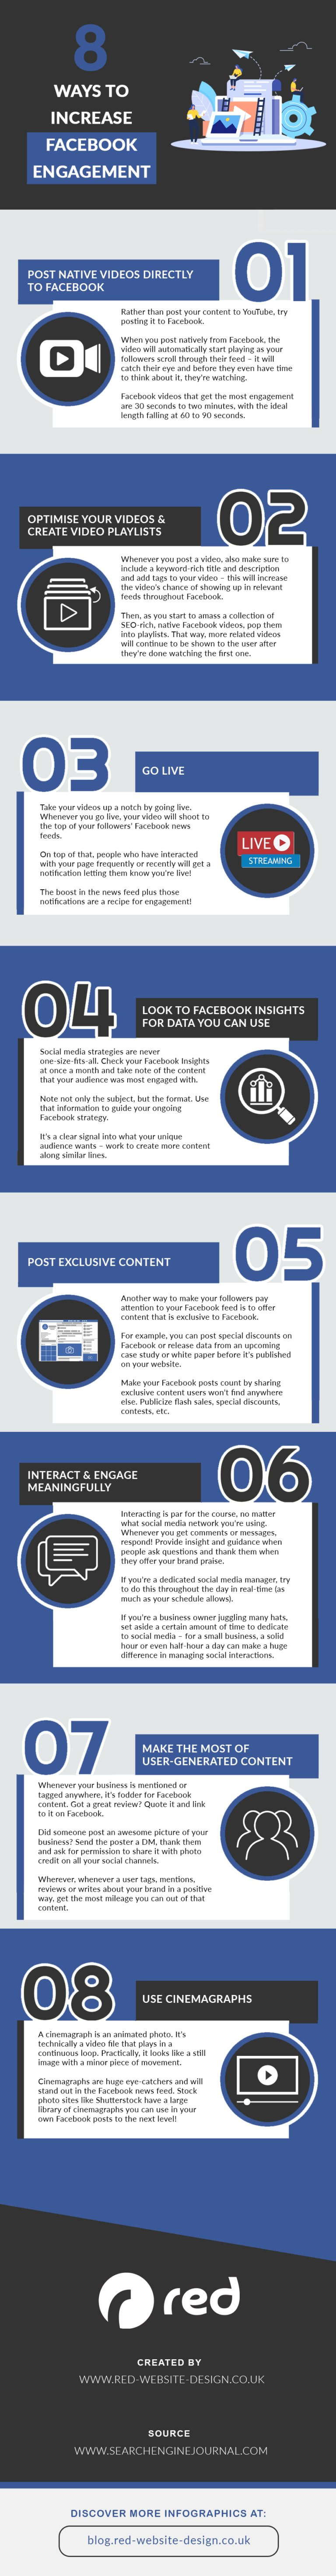 Infographic lists Facebook Page engagement tactics